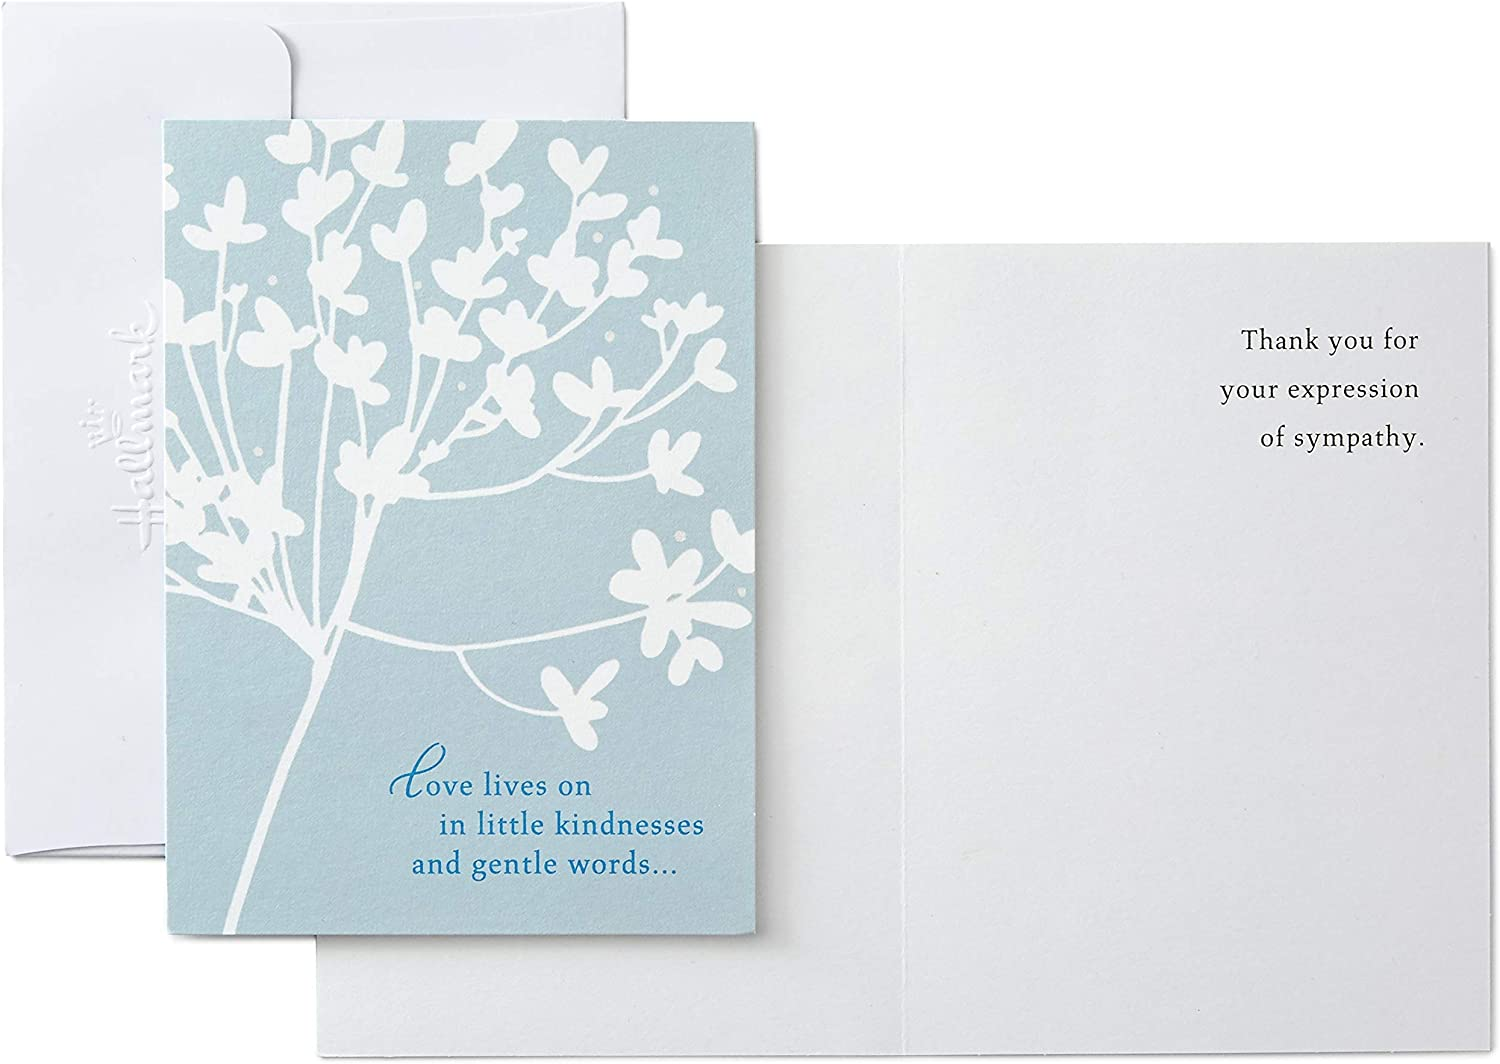 Hallmark Expressions Wedding Card